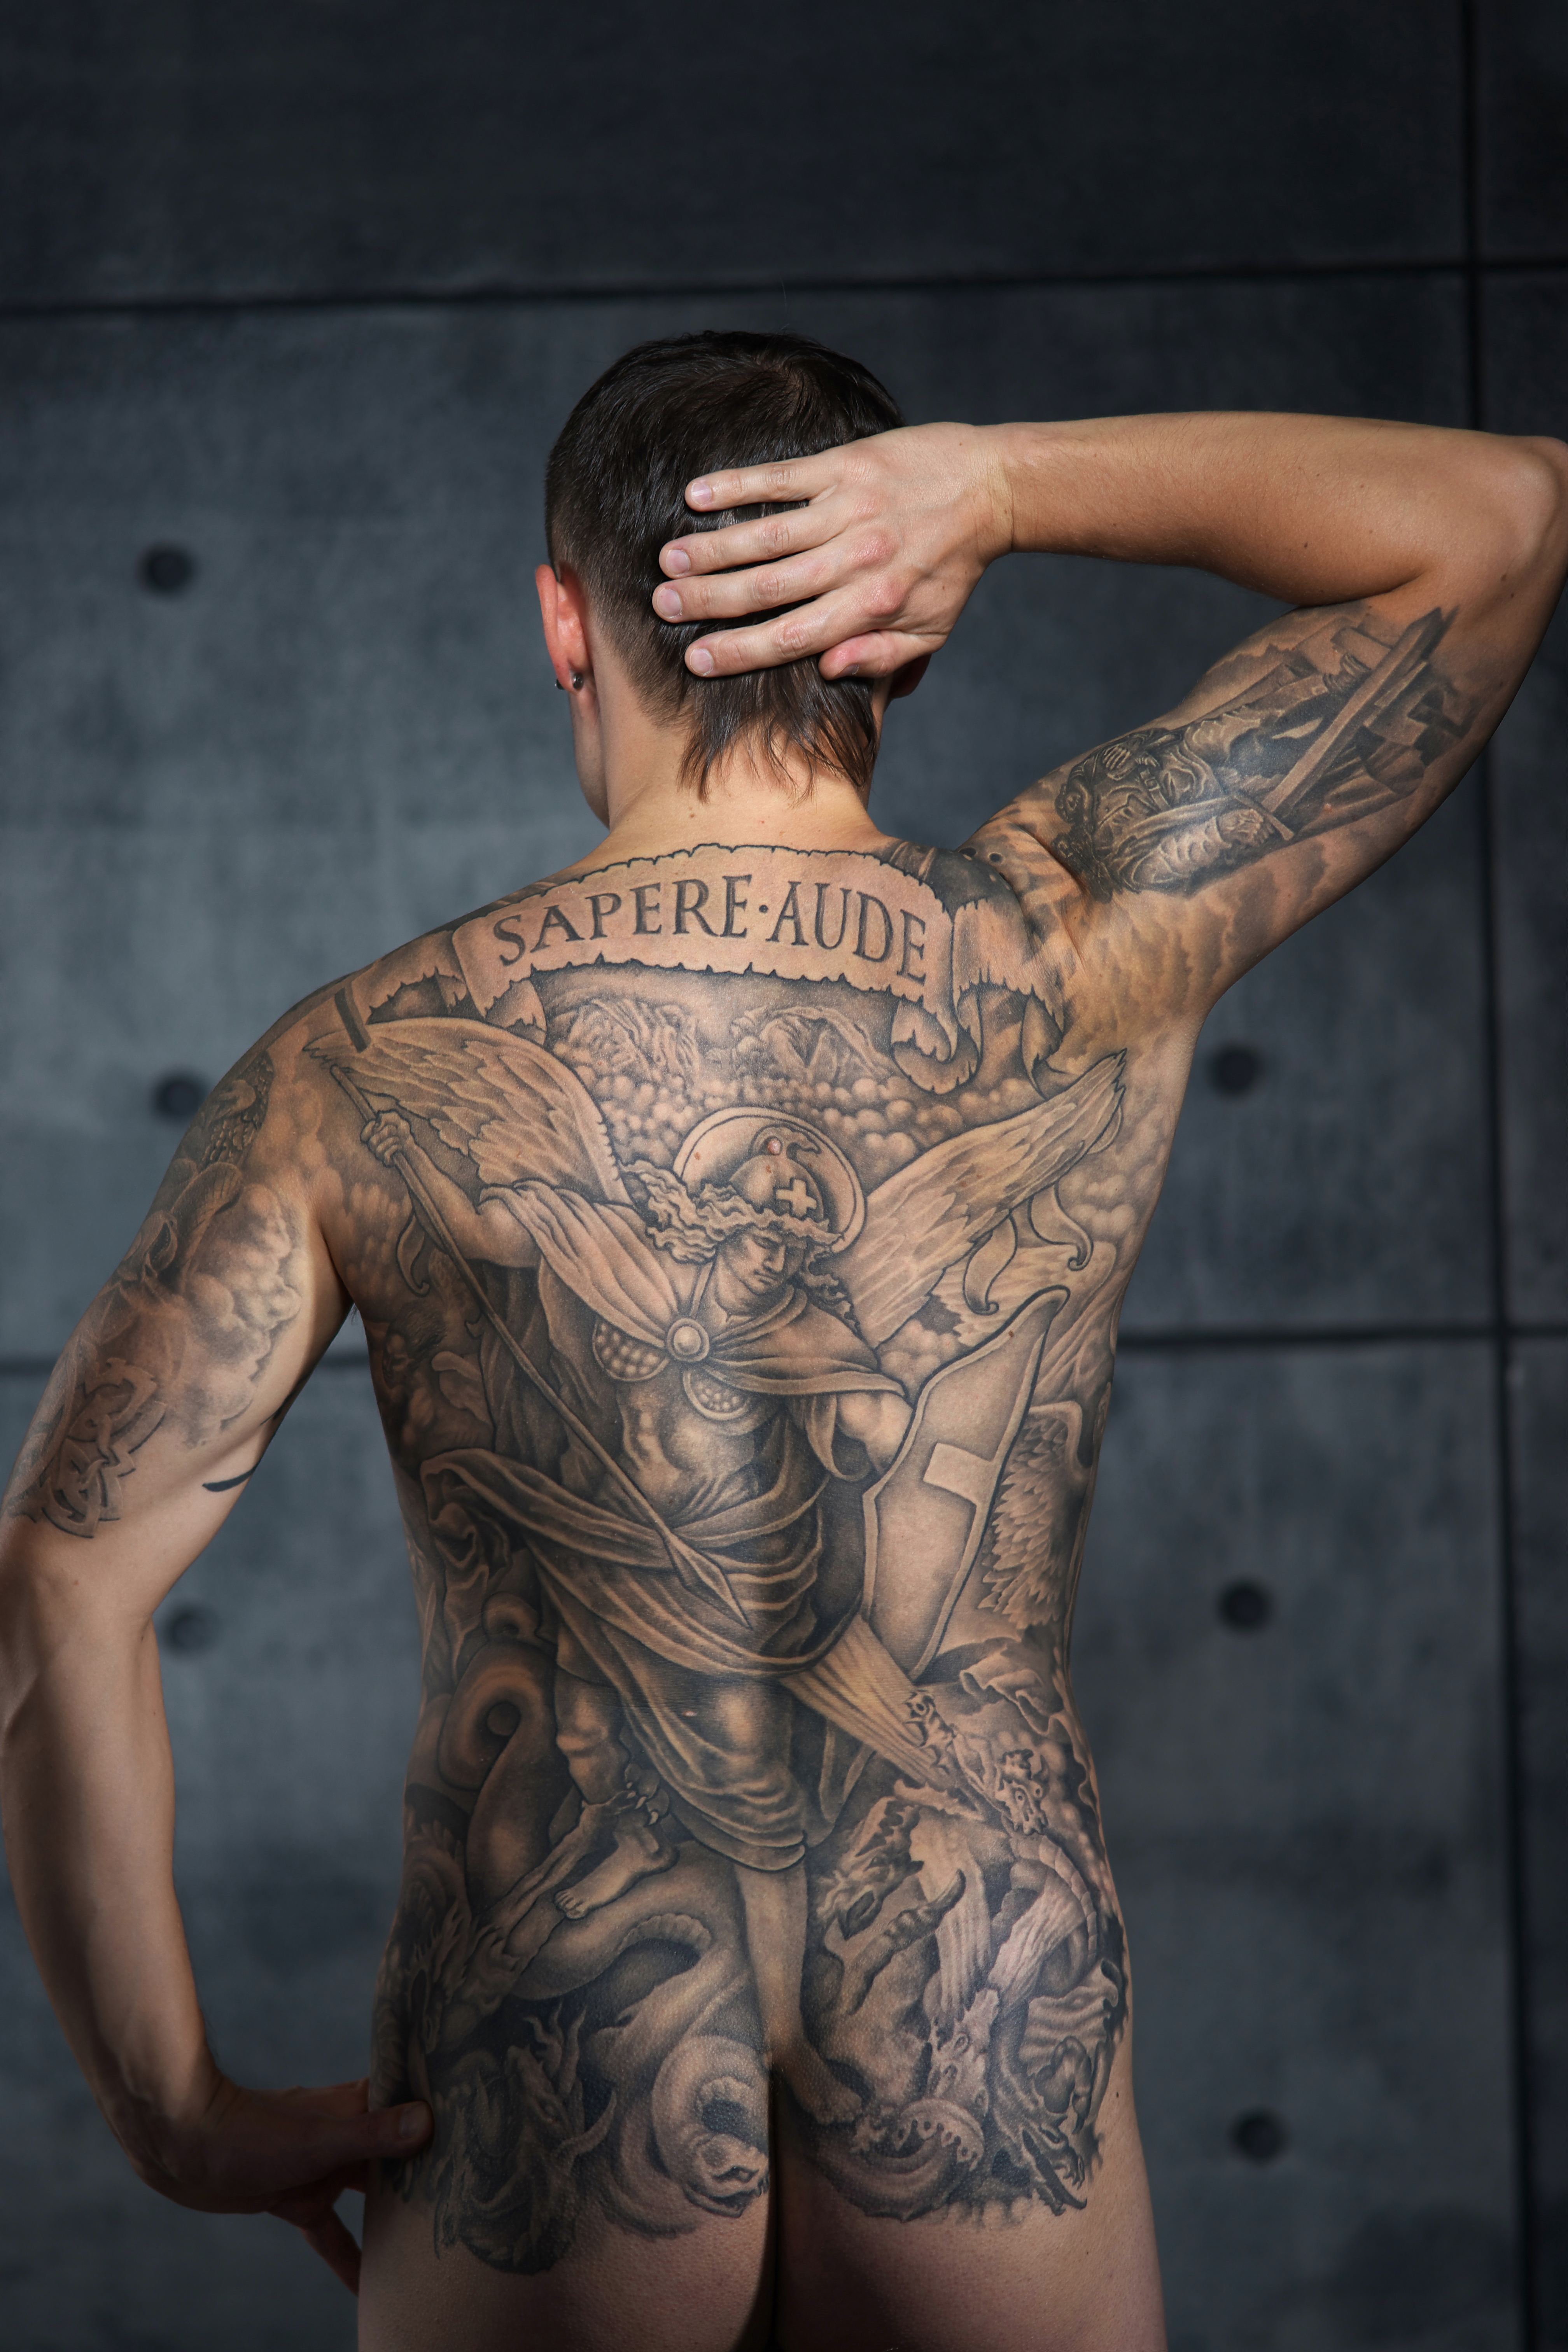 5bf6ce618 File:Man with a full back tattoo. Color.jpg - Wikimedia Commons